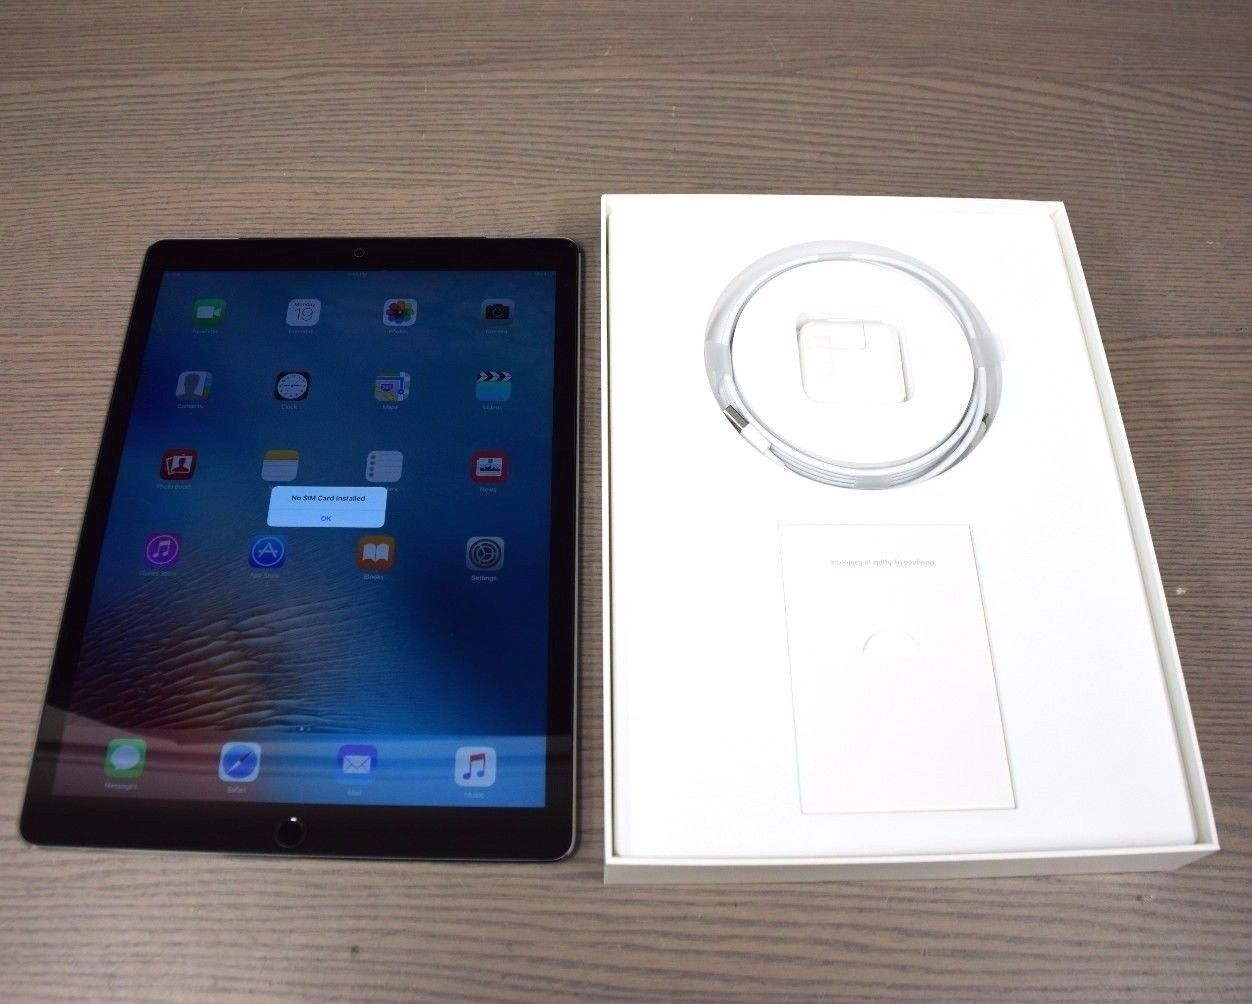 "Apple iPad Pro A1652 ML3T2LL 256GB 12.9"" Tablet (AT&T) NO RESERVE!!!!!!!!!!!!!!! https://t.co/kDs5k8iqBK https://t.co/vKUQWgWqsB"